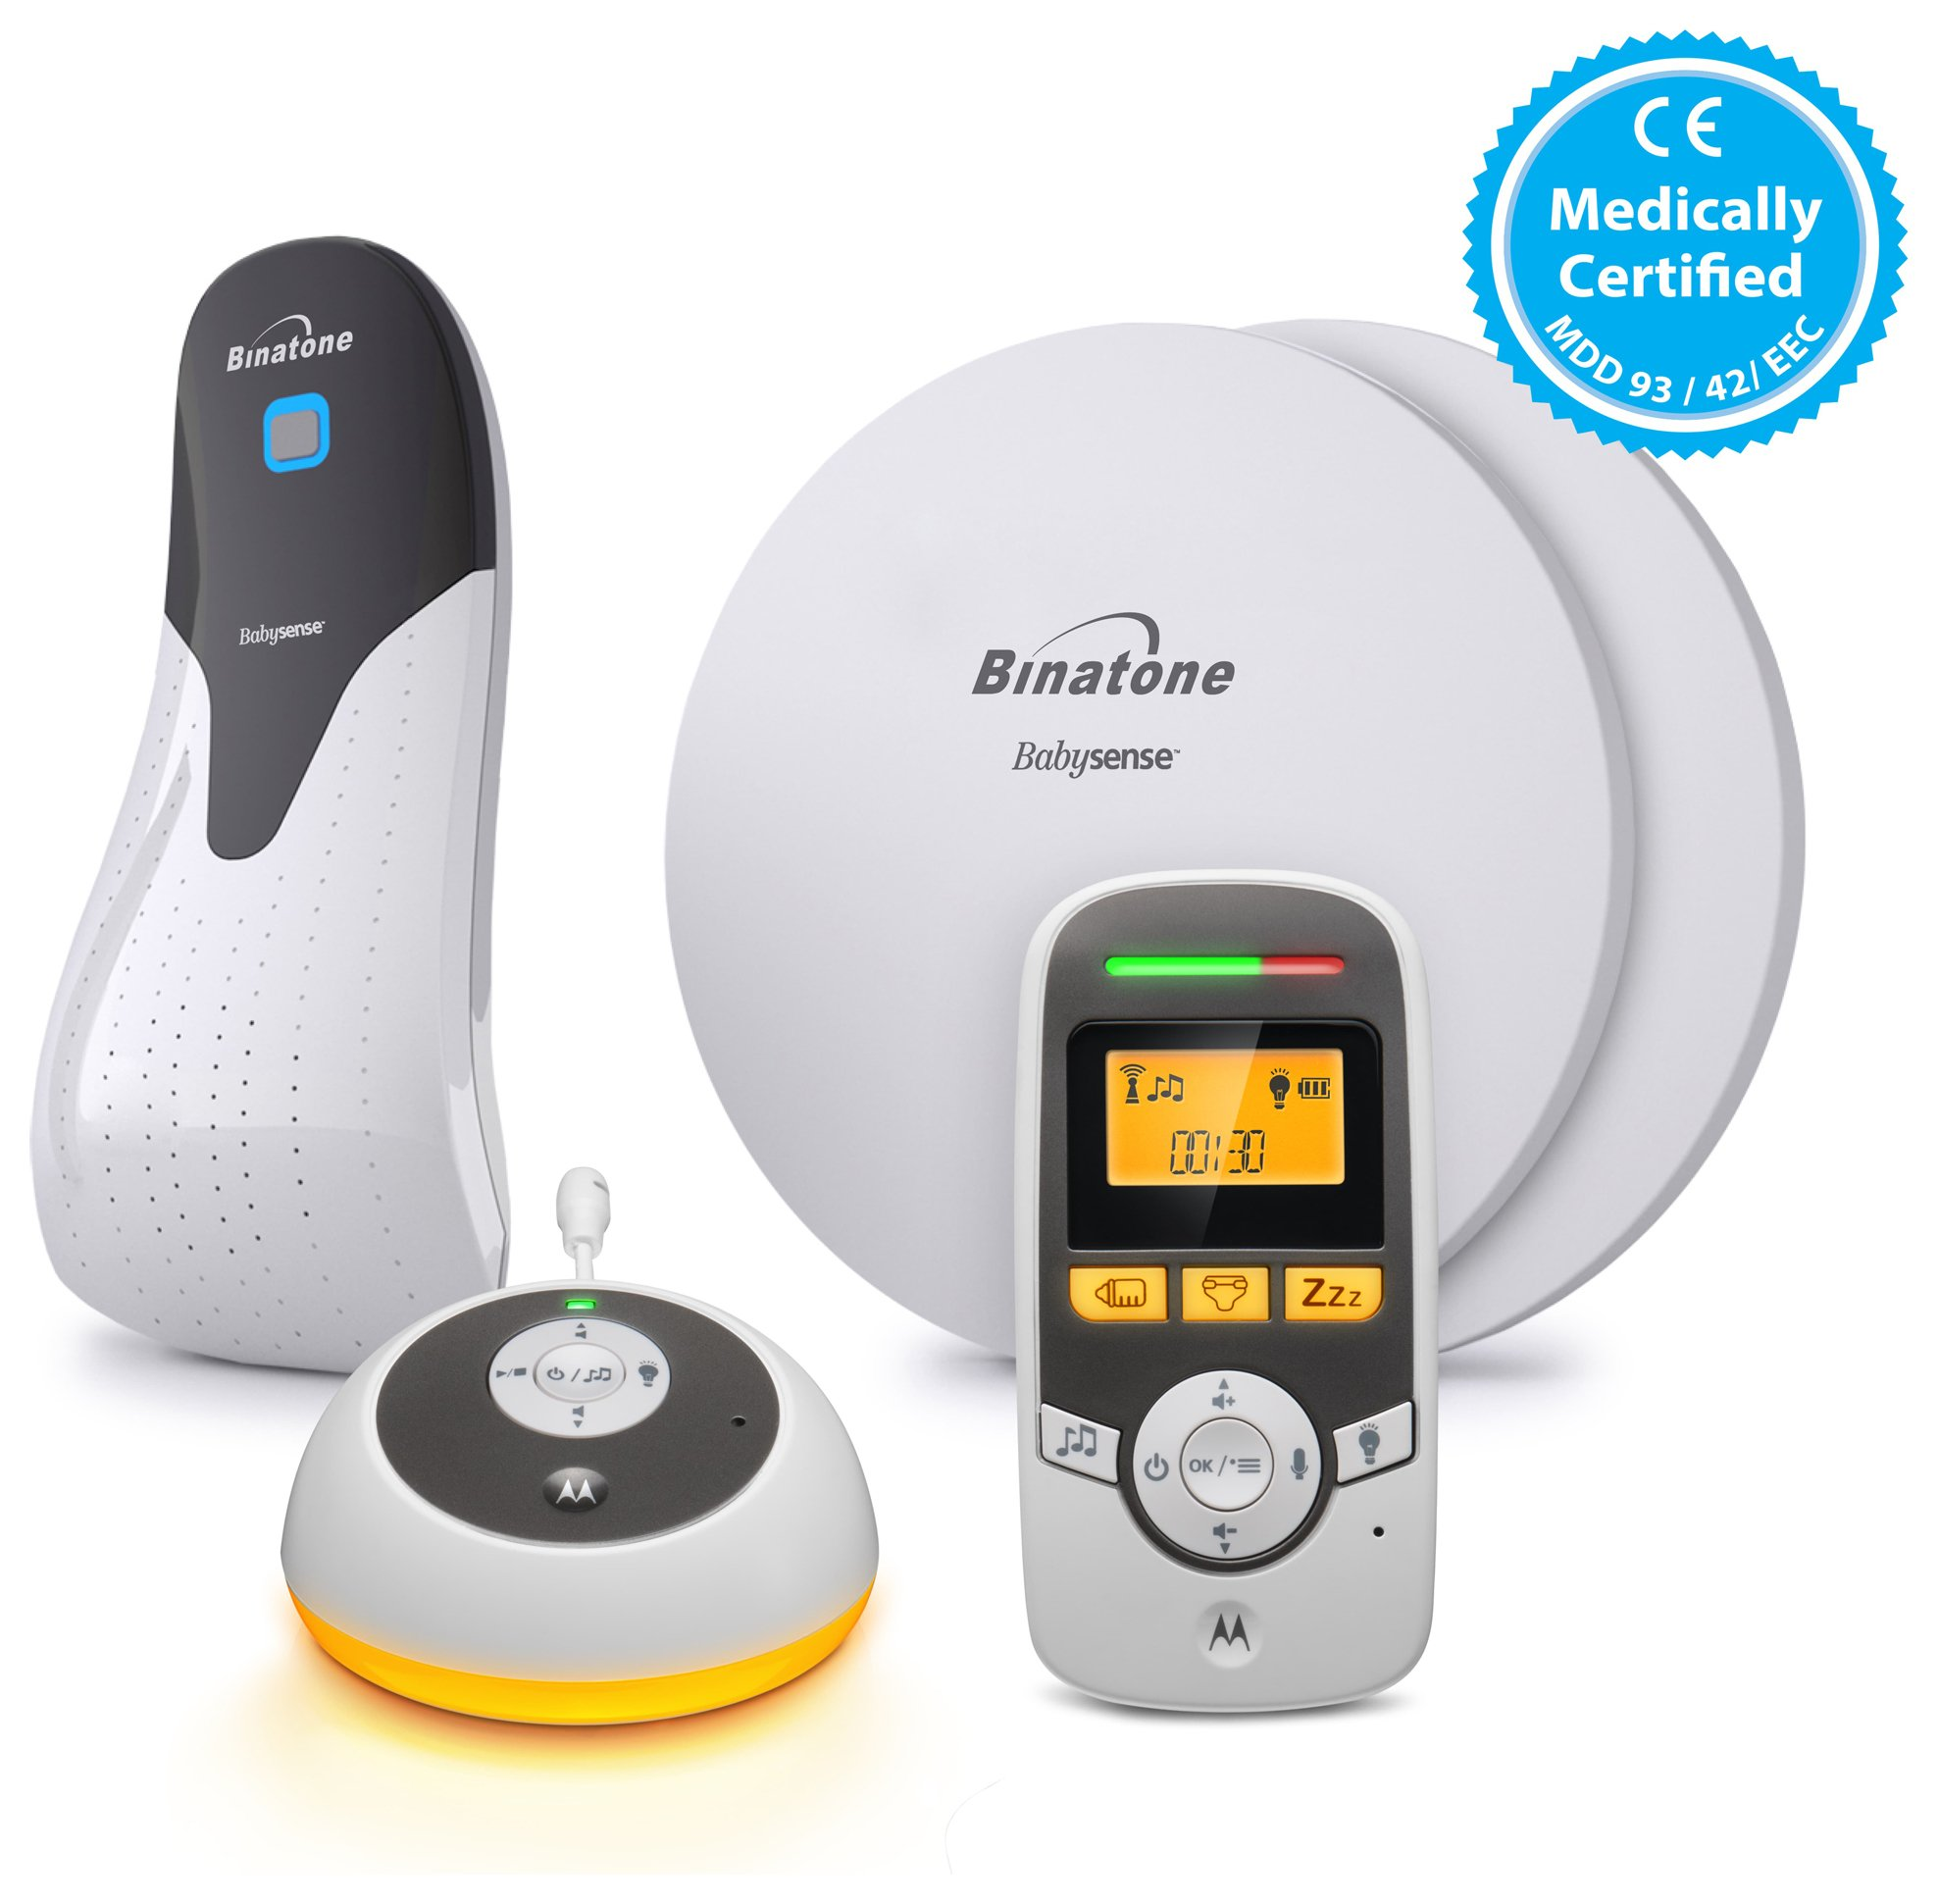 motorola mbp 161 babysense baby monitor and sensor pads baby deals of the day uk. Black Bedroom Furniture Sets. Home Design Ideas